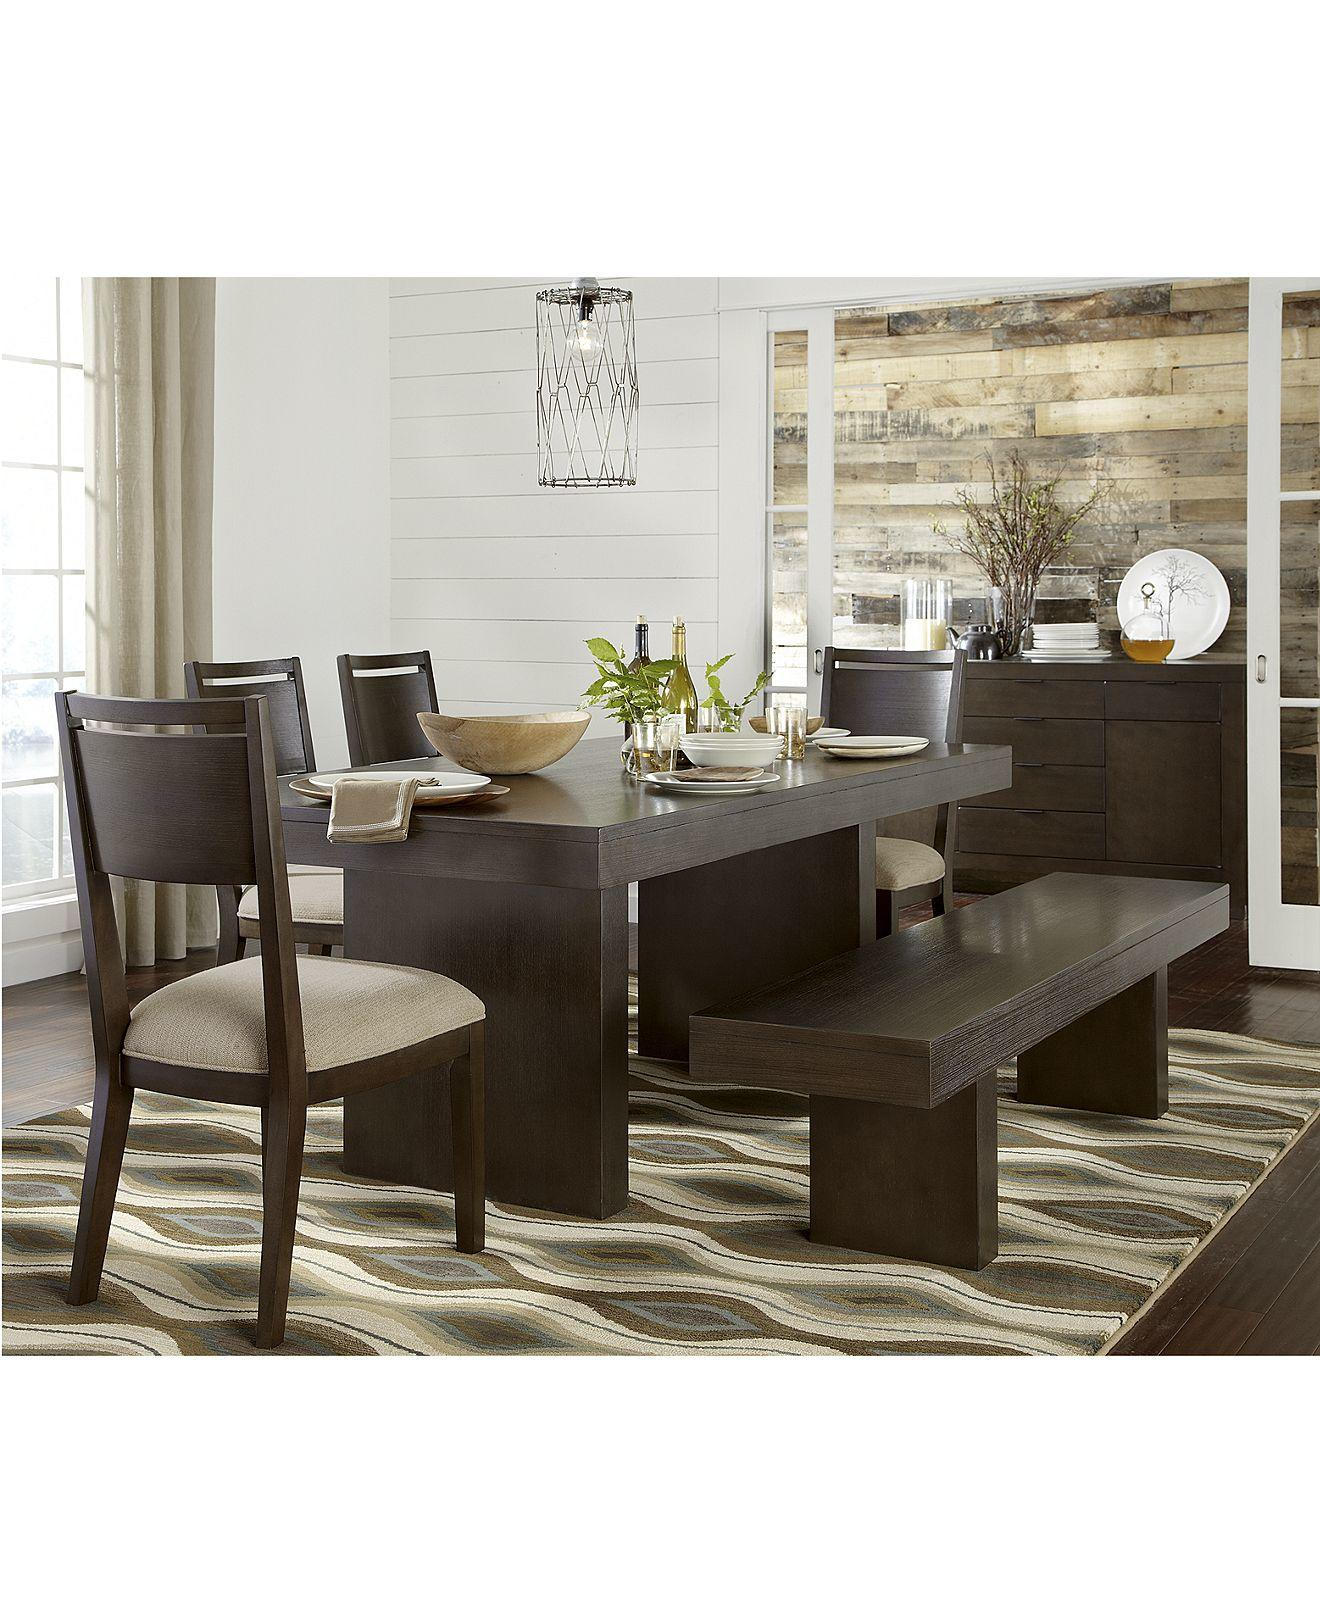 Garwood Dining Table From Macys